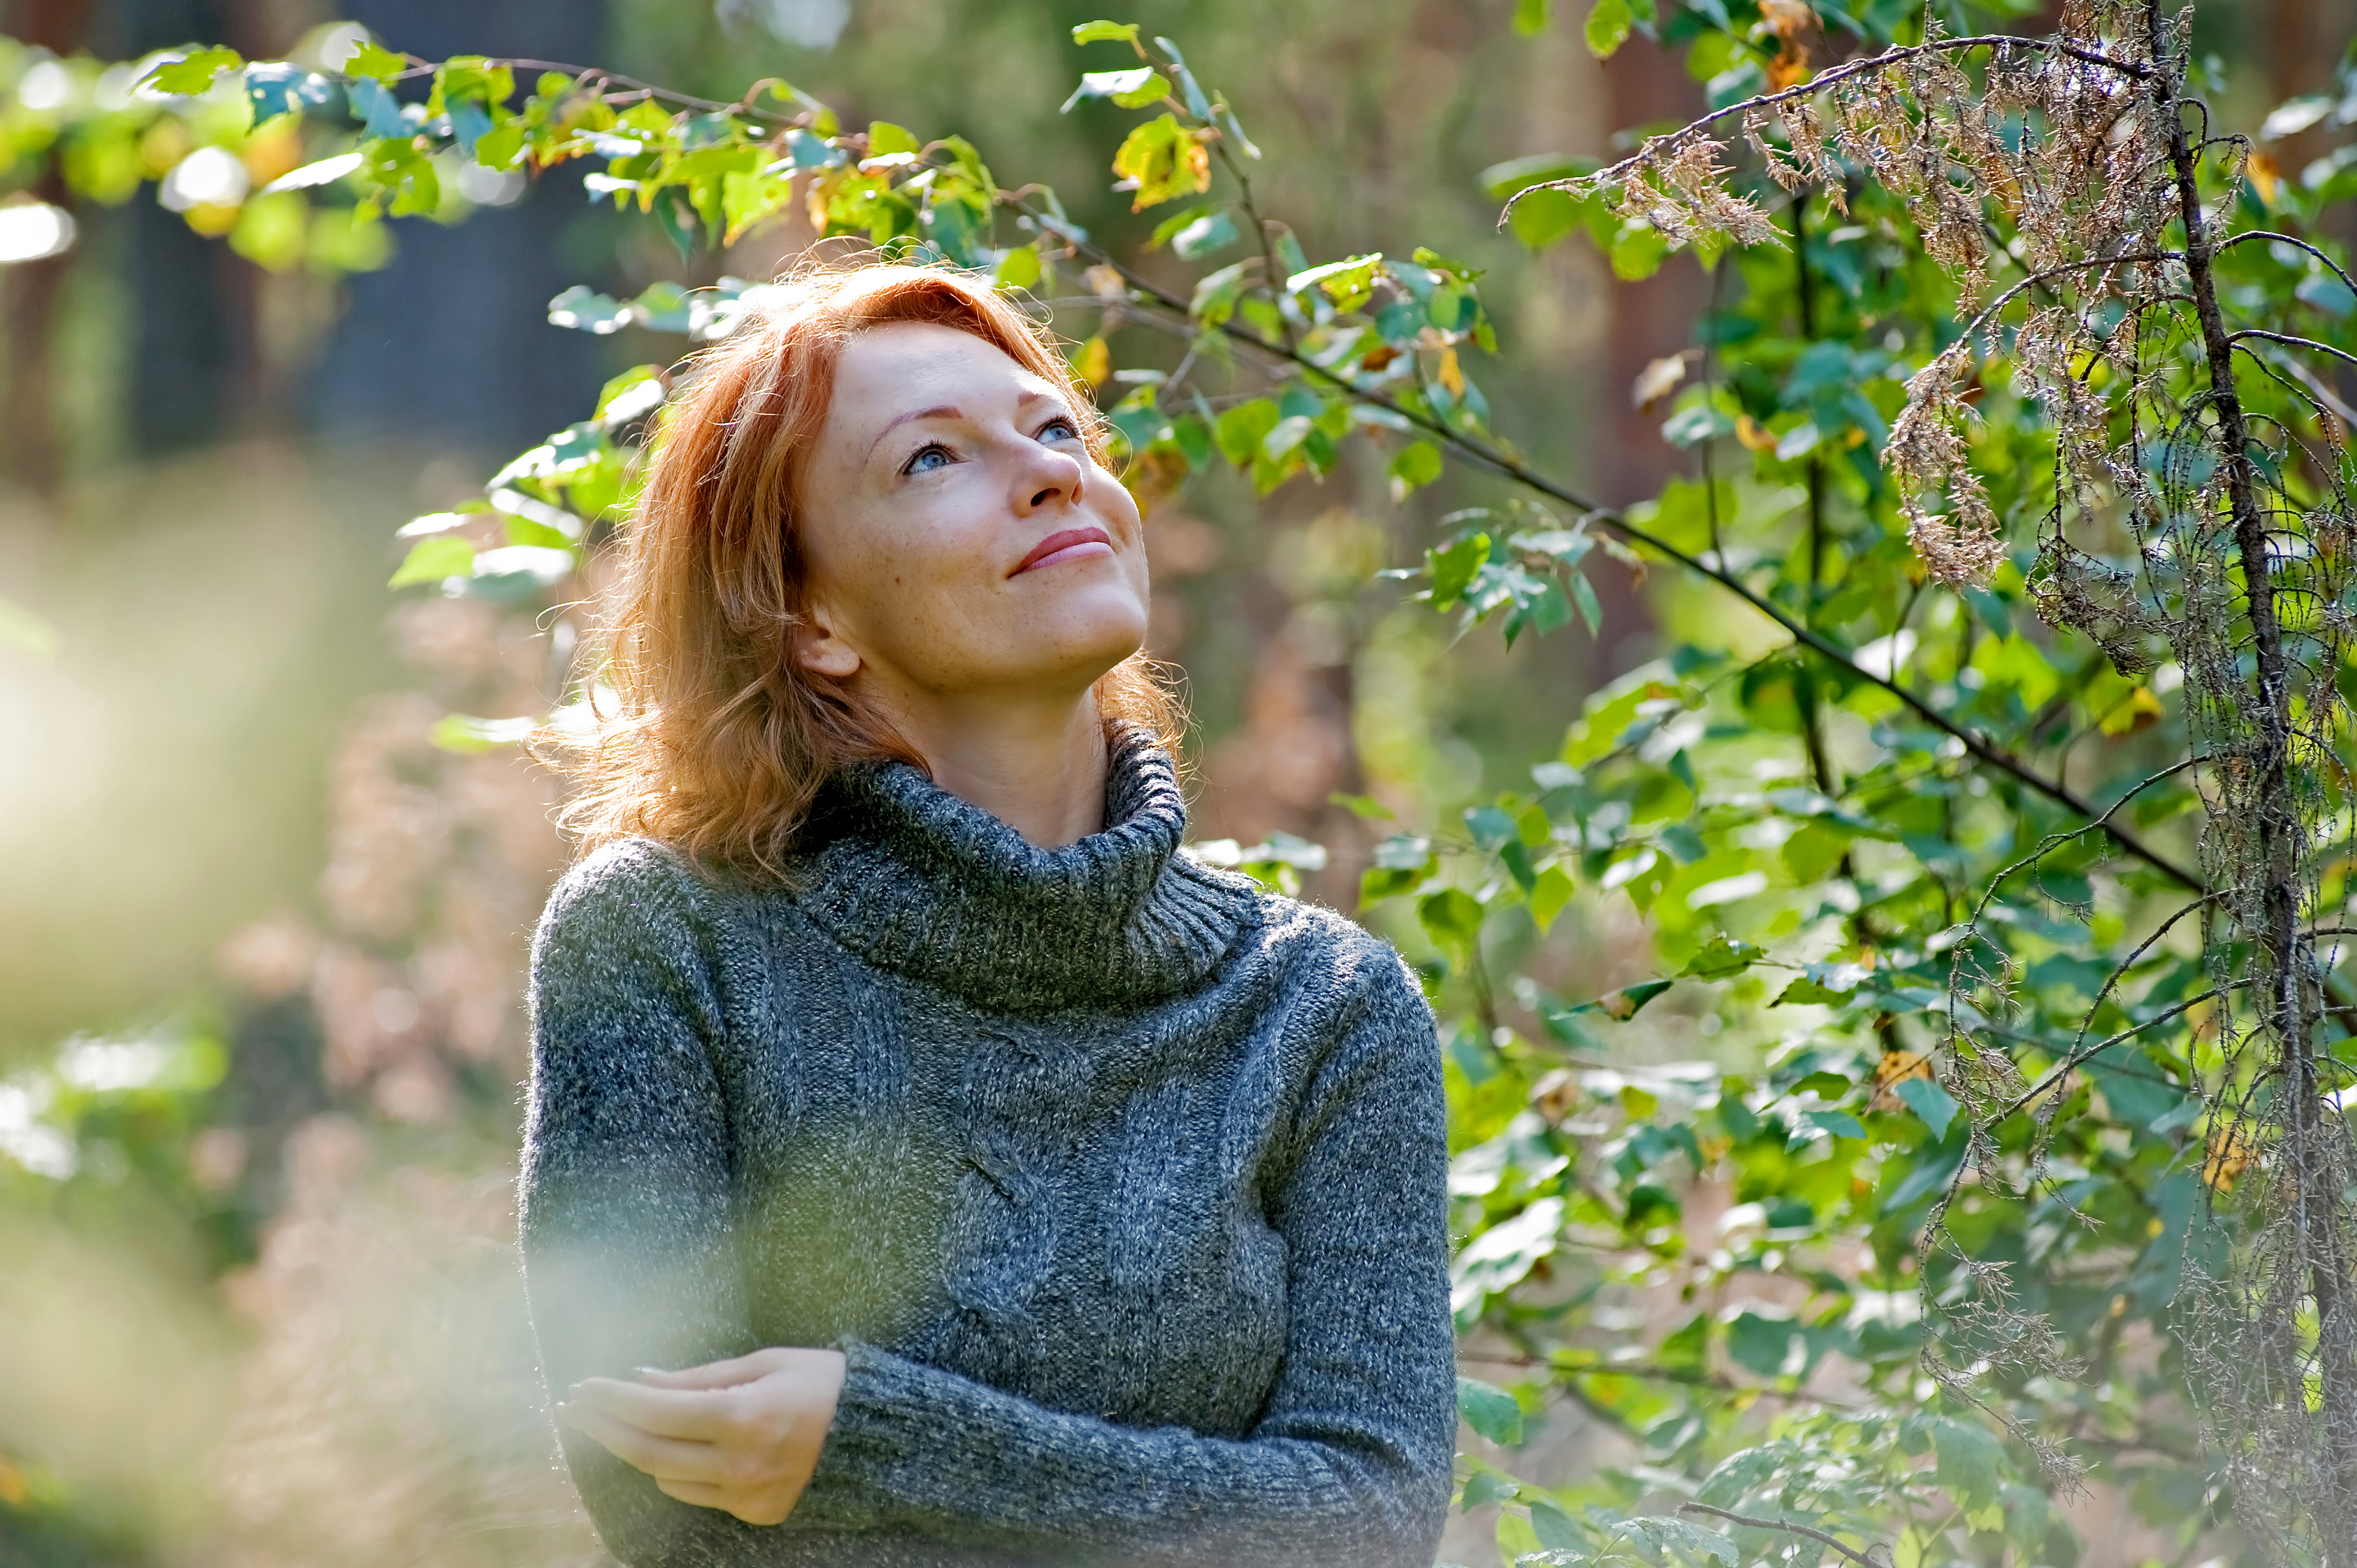 Portrait of woman in nature